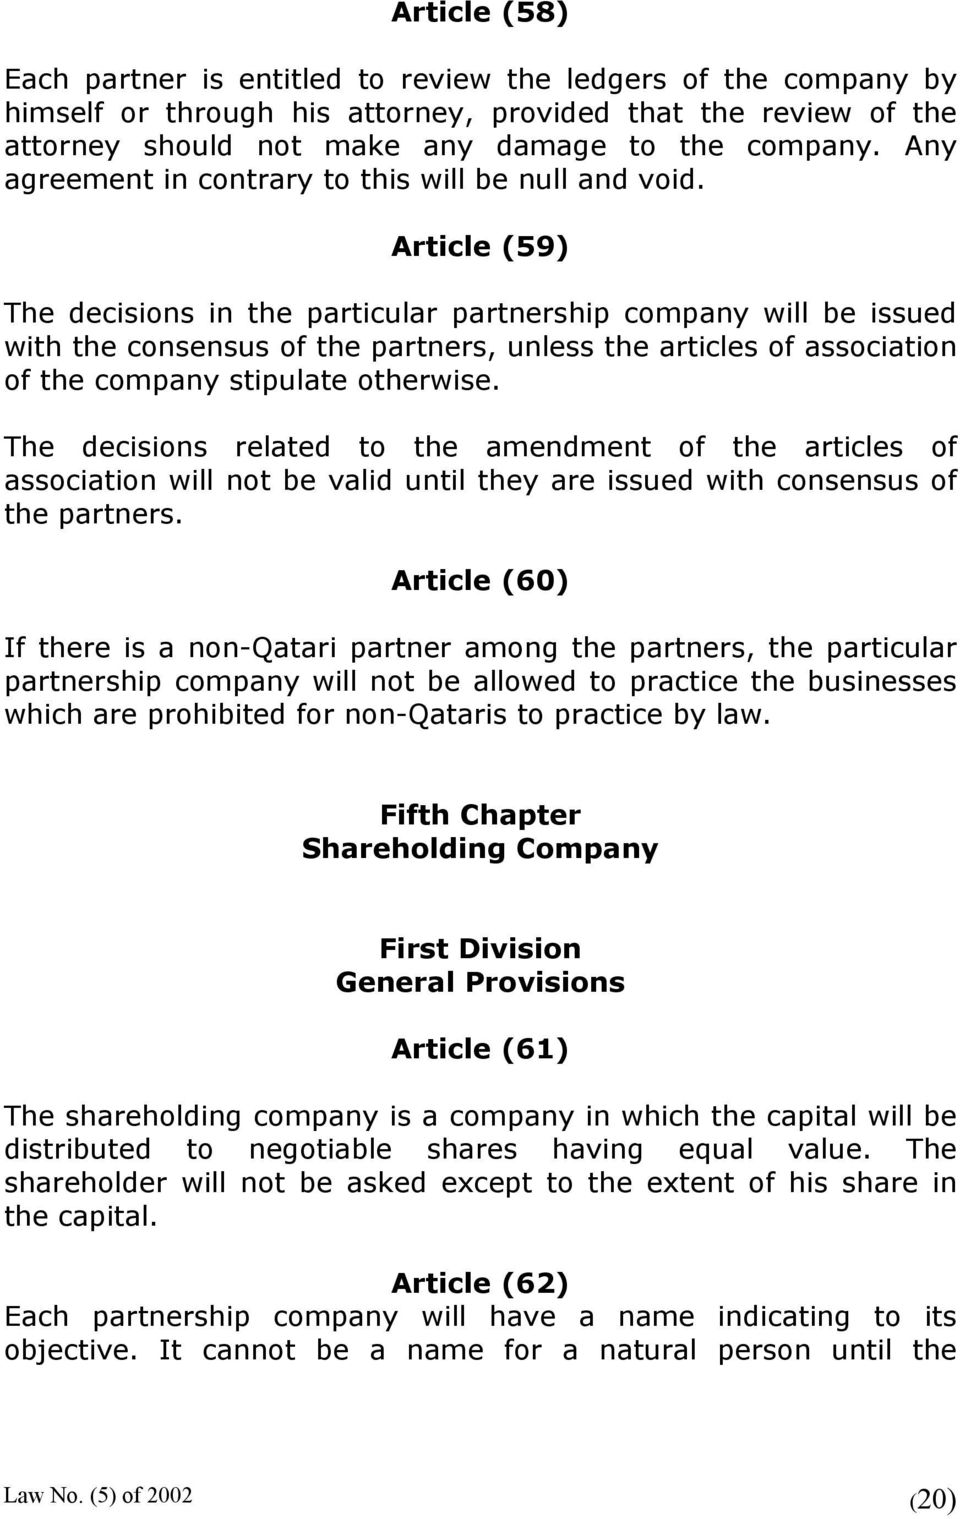 Article (59) The decisions in the particular partnership company will be issued with the consensus of the partners, unless the articles of association of the company stipulate otherwise.